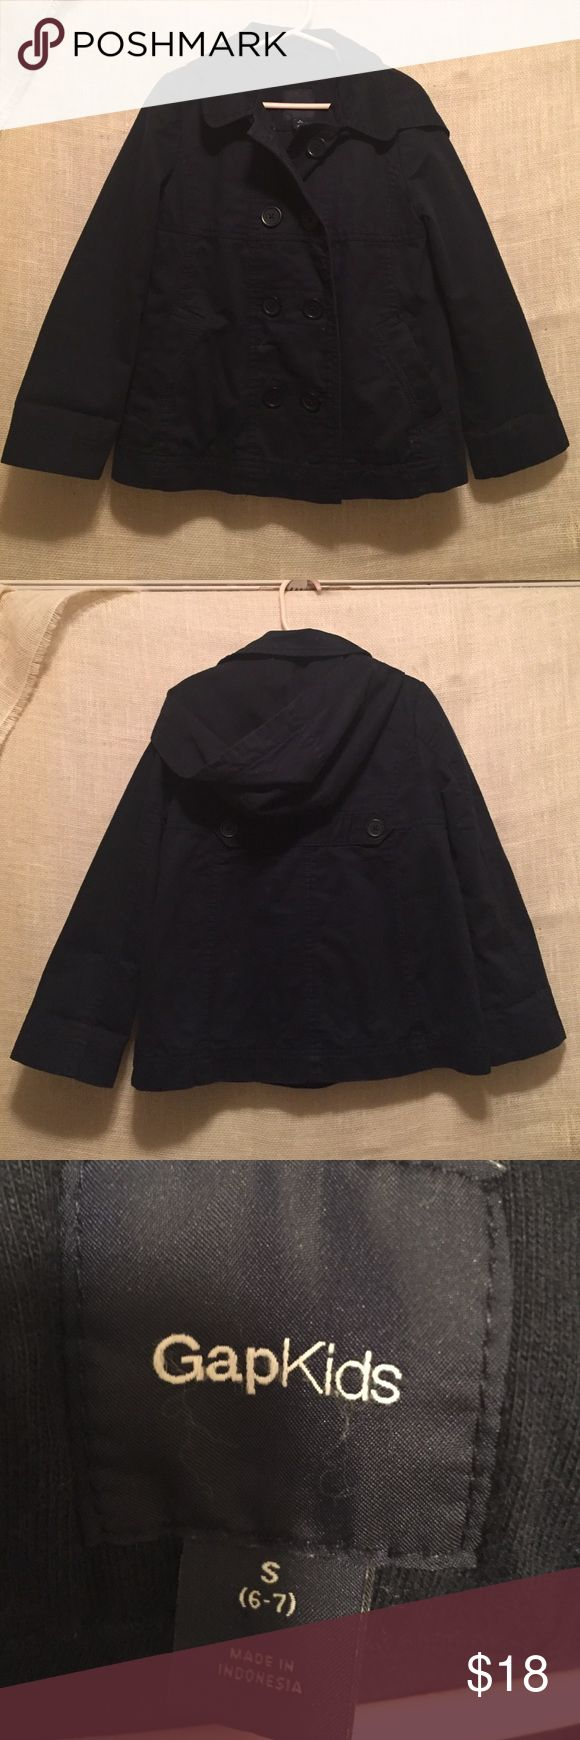 Gap girls peacoat style jacket navy size small Super cute peacoat jacket from the Gap.  Navy with navy knit lining inside. Perfect for spring and fall. Detachable hood. Lots of cute details.  Excellent condition. Size small 6 - 7 GAP Jackets & Coats Pea Coats